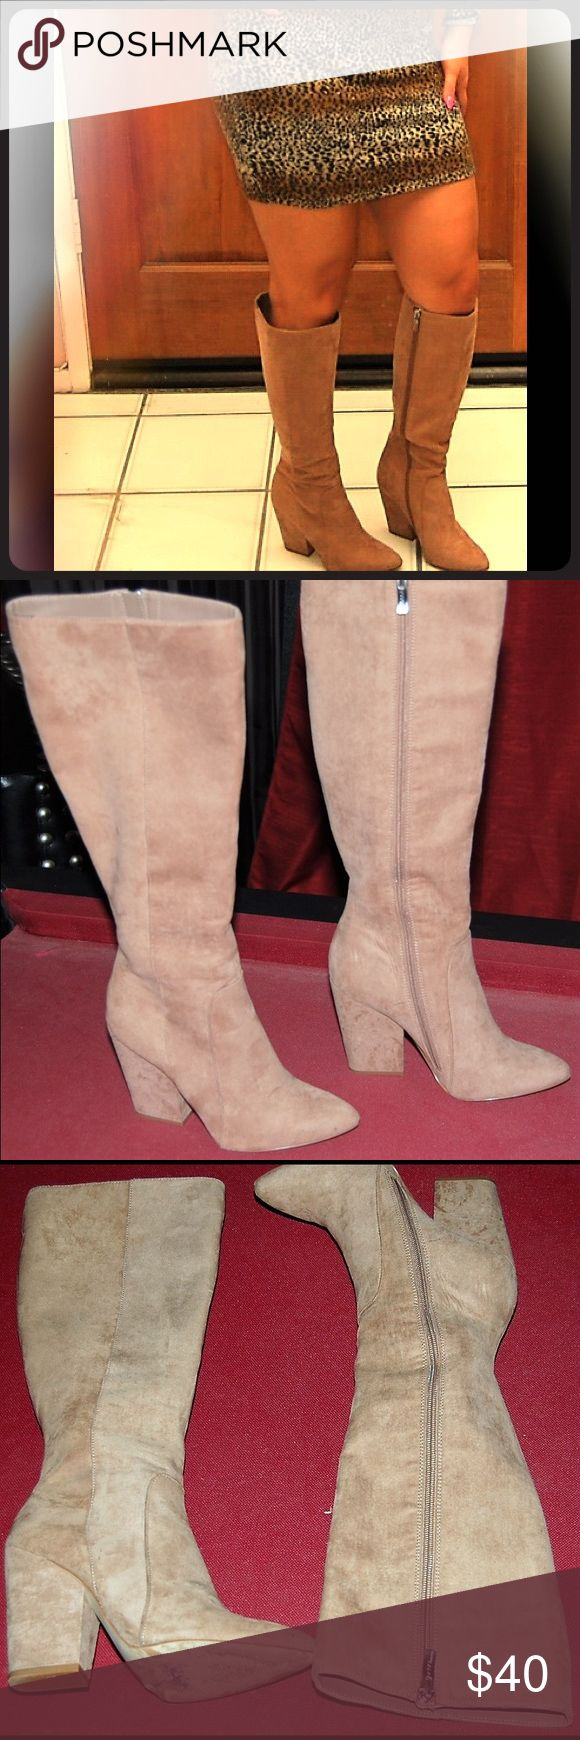 BCBGeneration Tall Boots BCBGeneration Tan Tall Boots. Perfect Heel Size, Comfortable For A Long Night Out! Used, But In Great Condition. BCBGeneration Shoes Heeled Boots